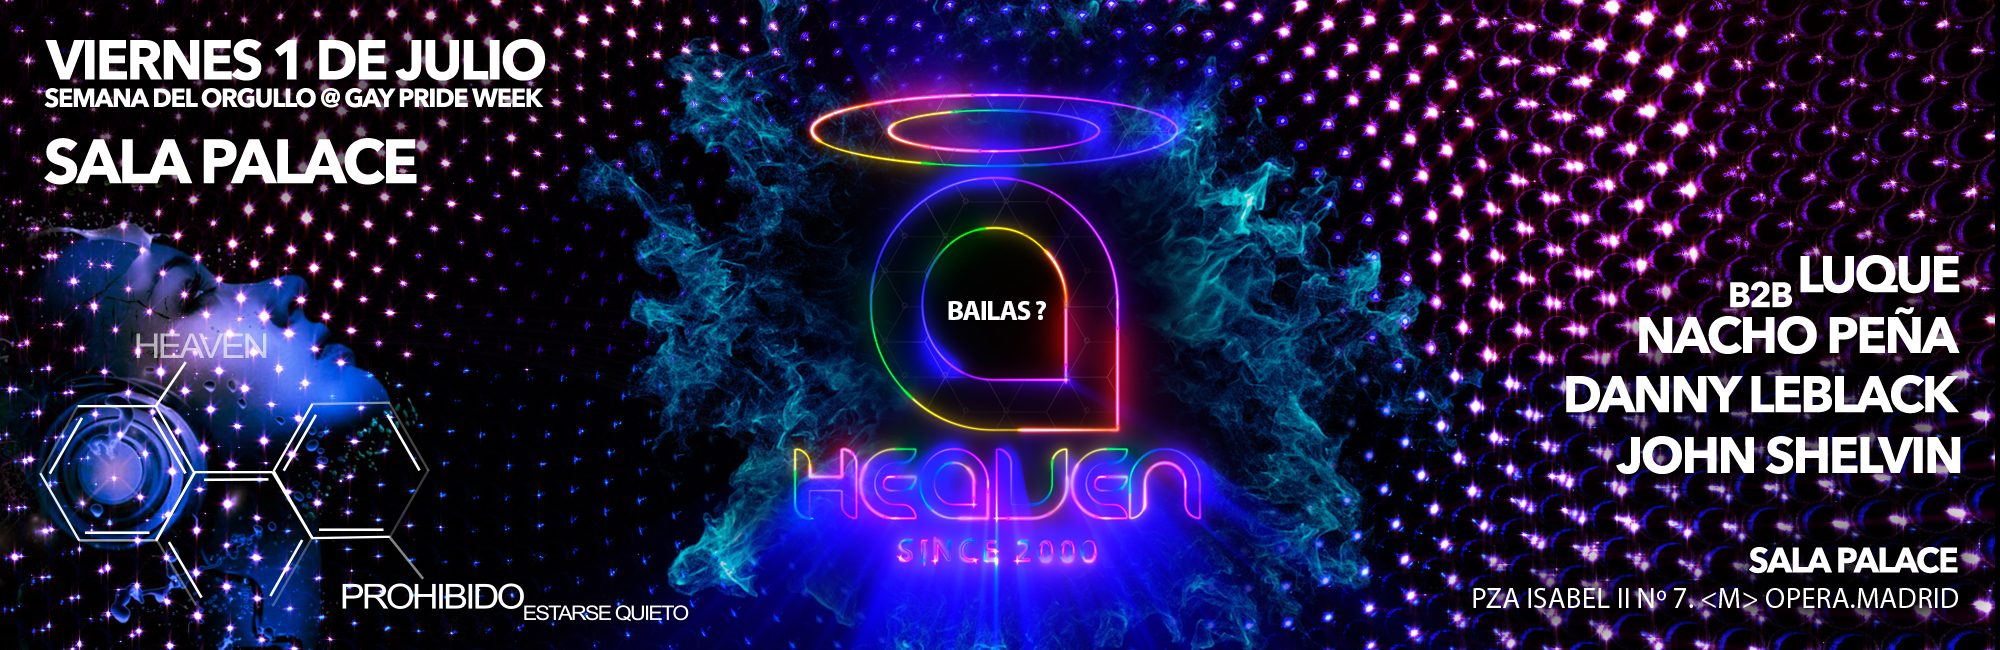 Flyer-Heaven-Palace@Orgullo-2016